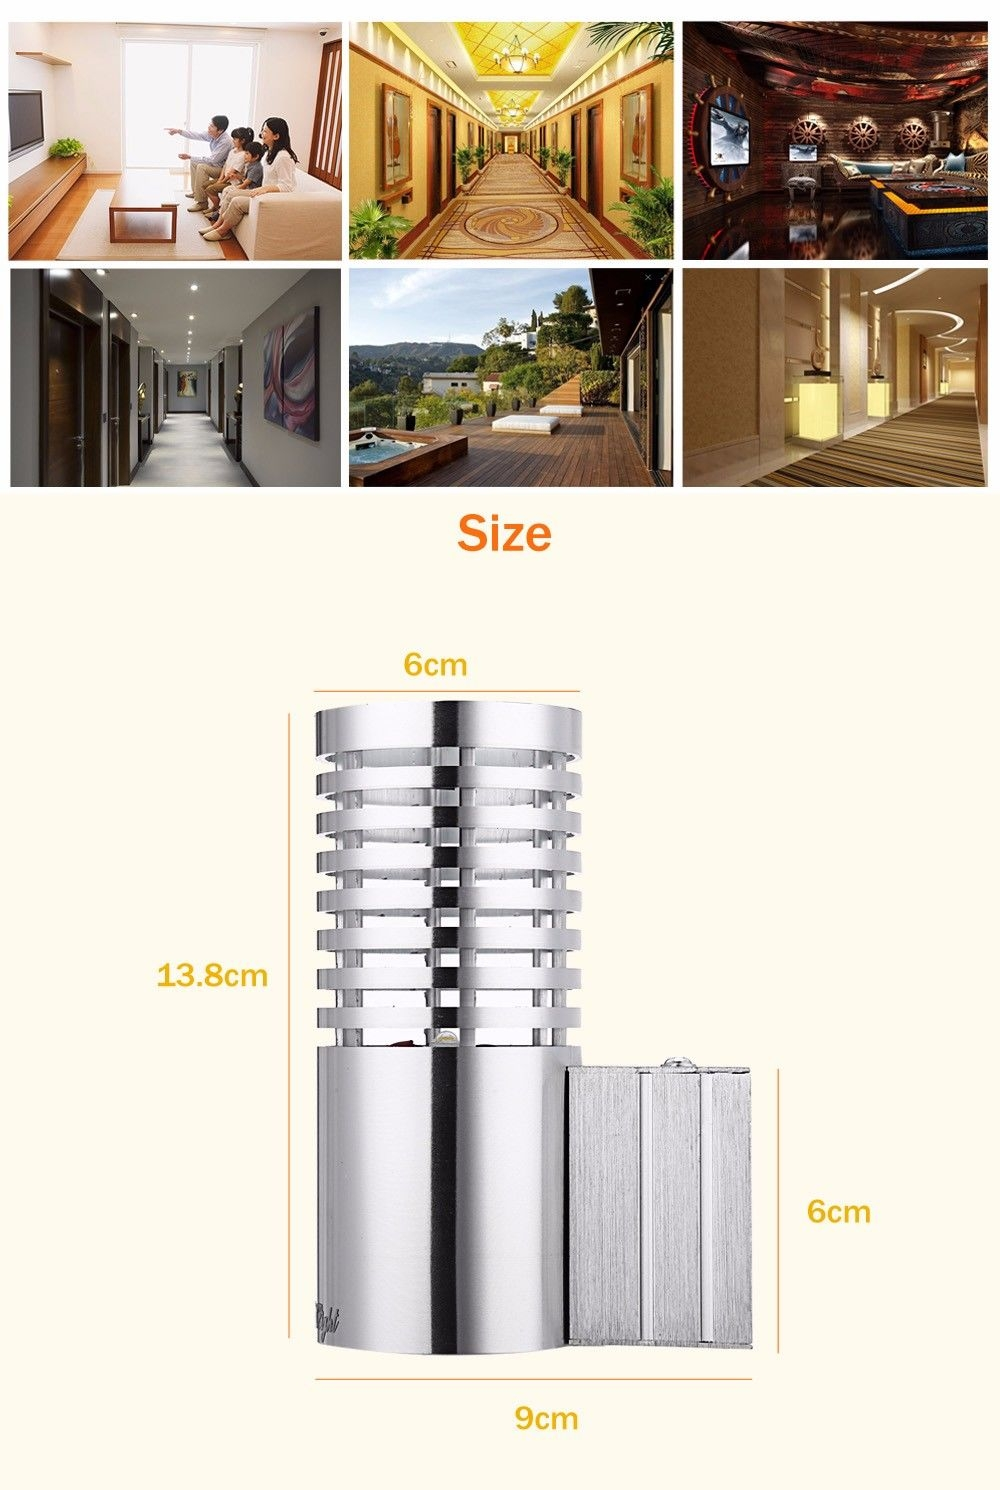 YouOKLight YK2240 Strip-type 1W 80LM LED Wall Lamp Bedroom Decorate Night Light